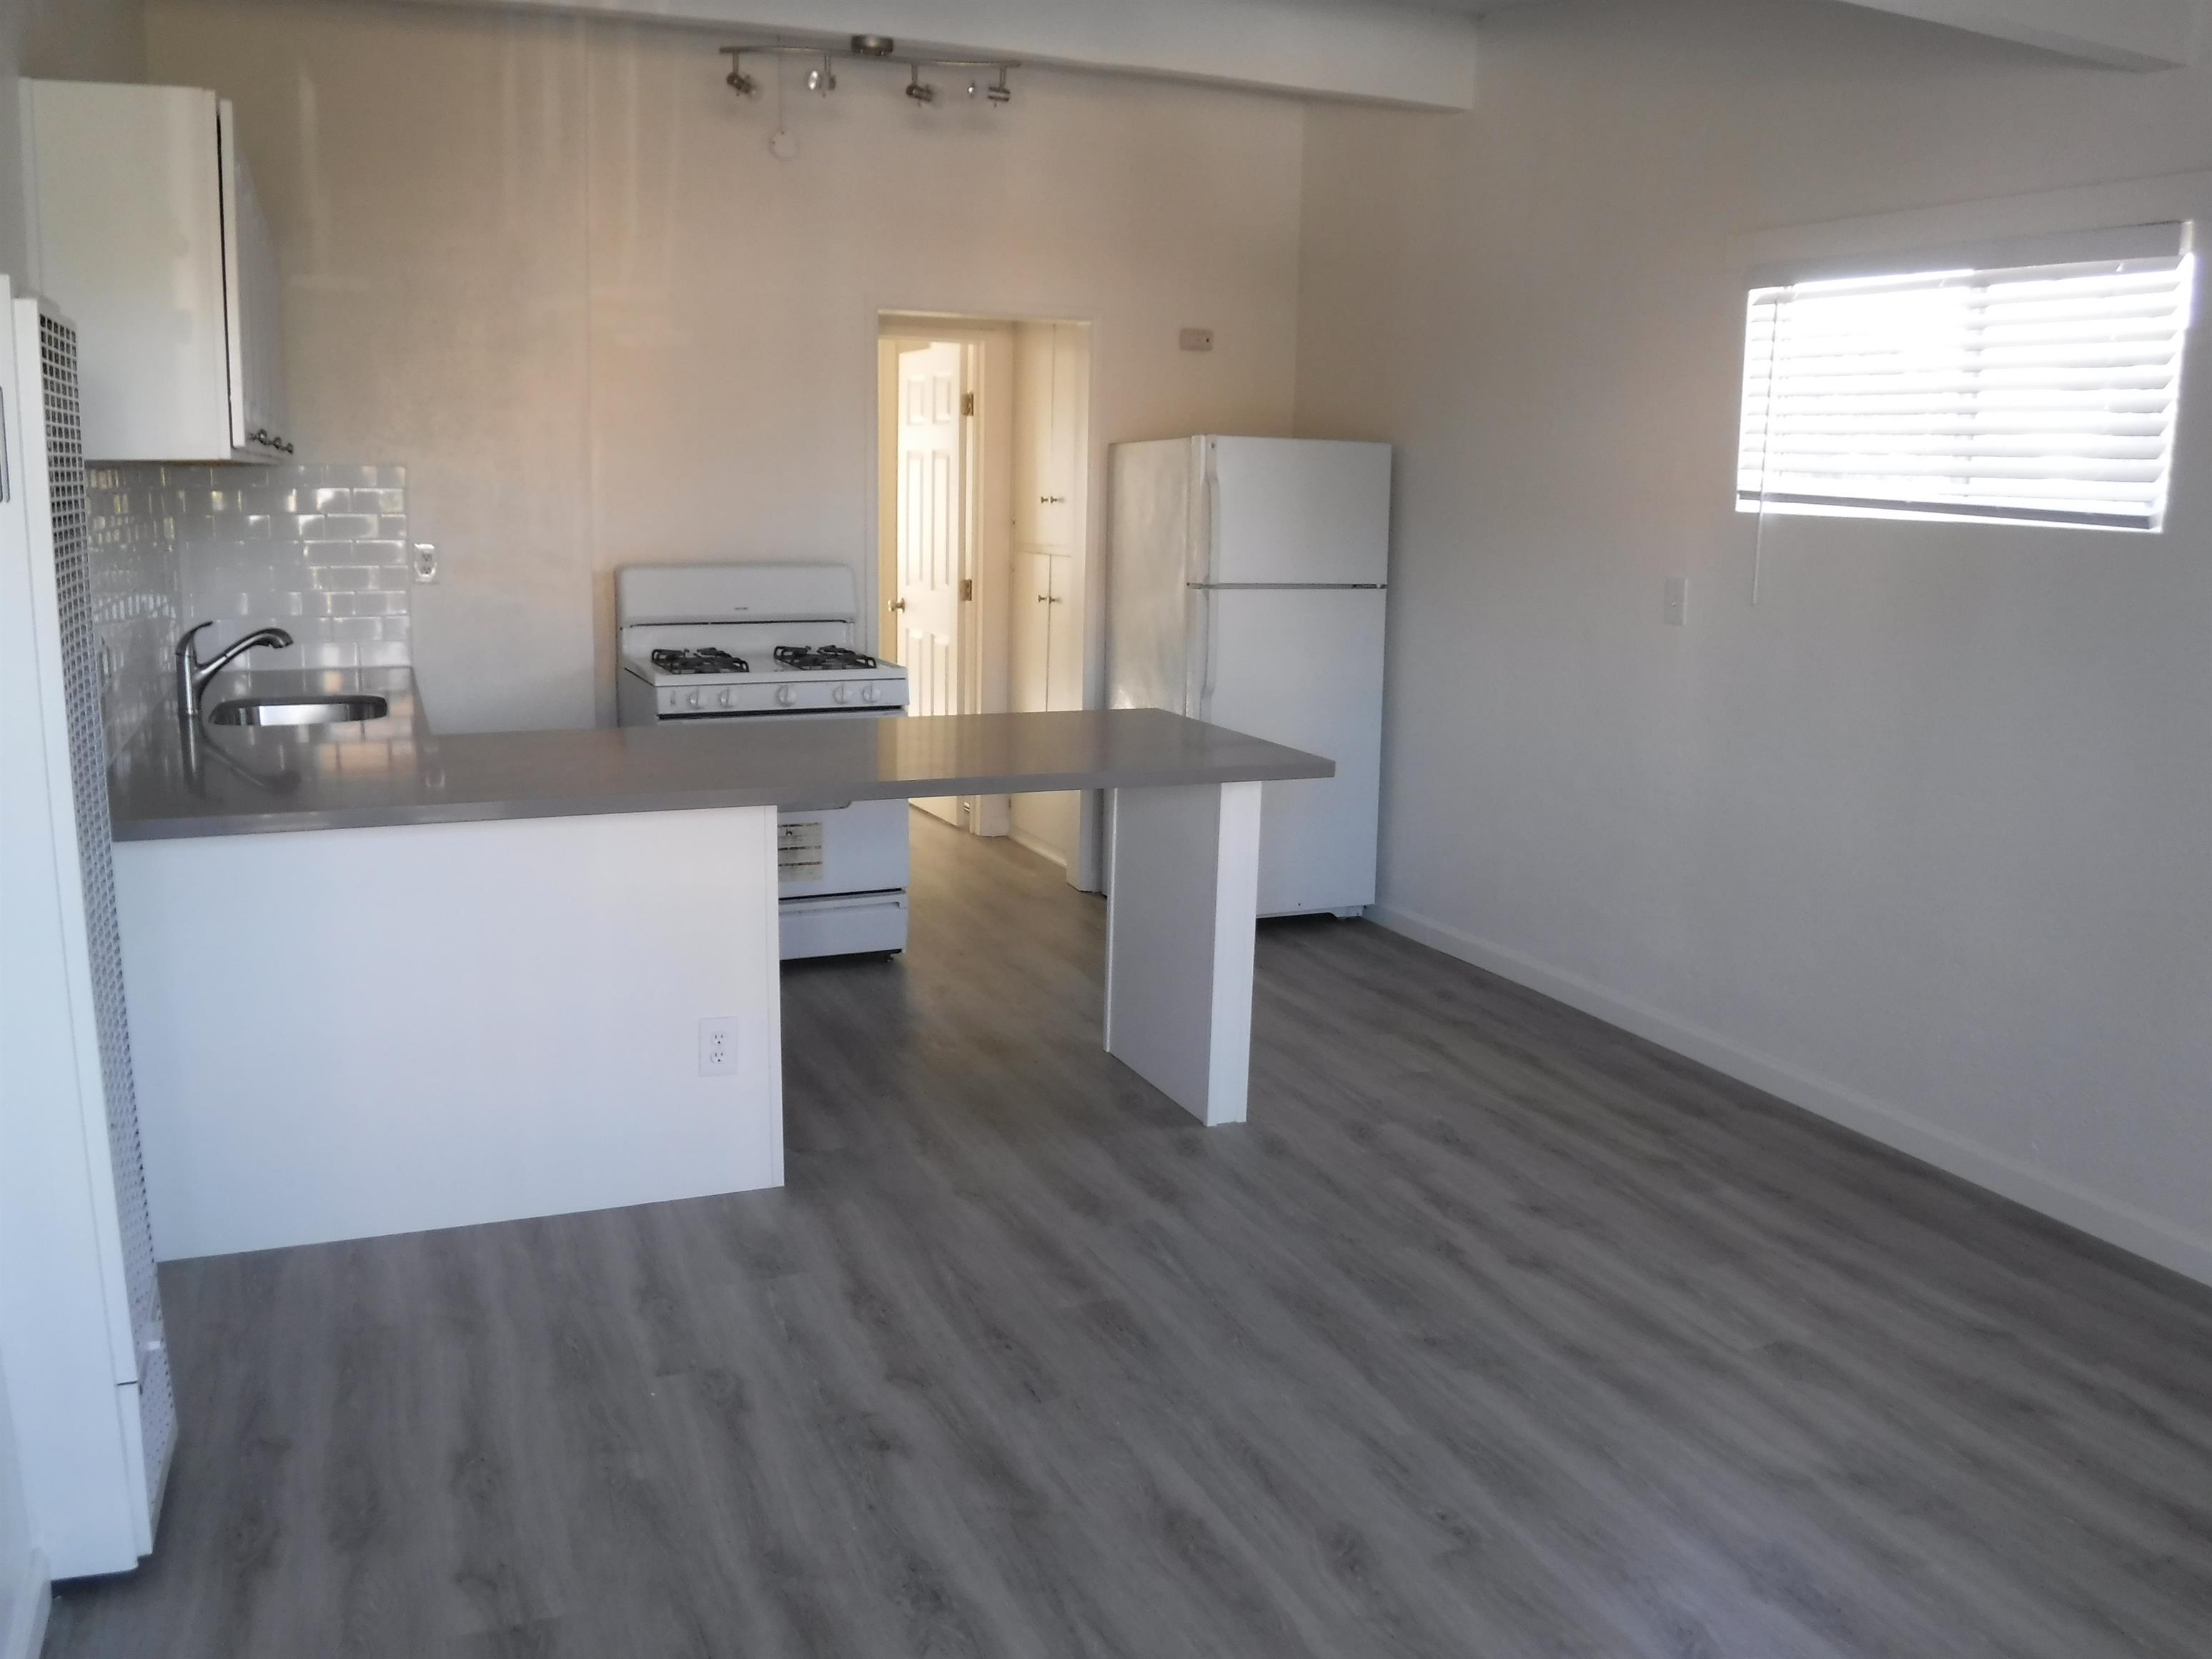 6691 Abrego Rd 13 image